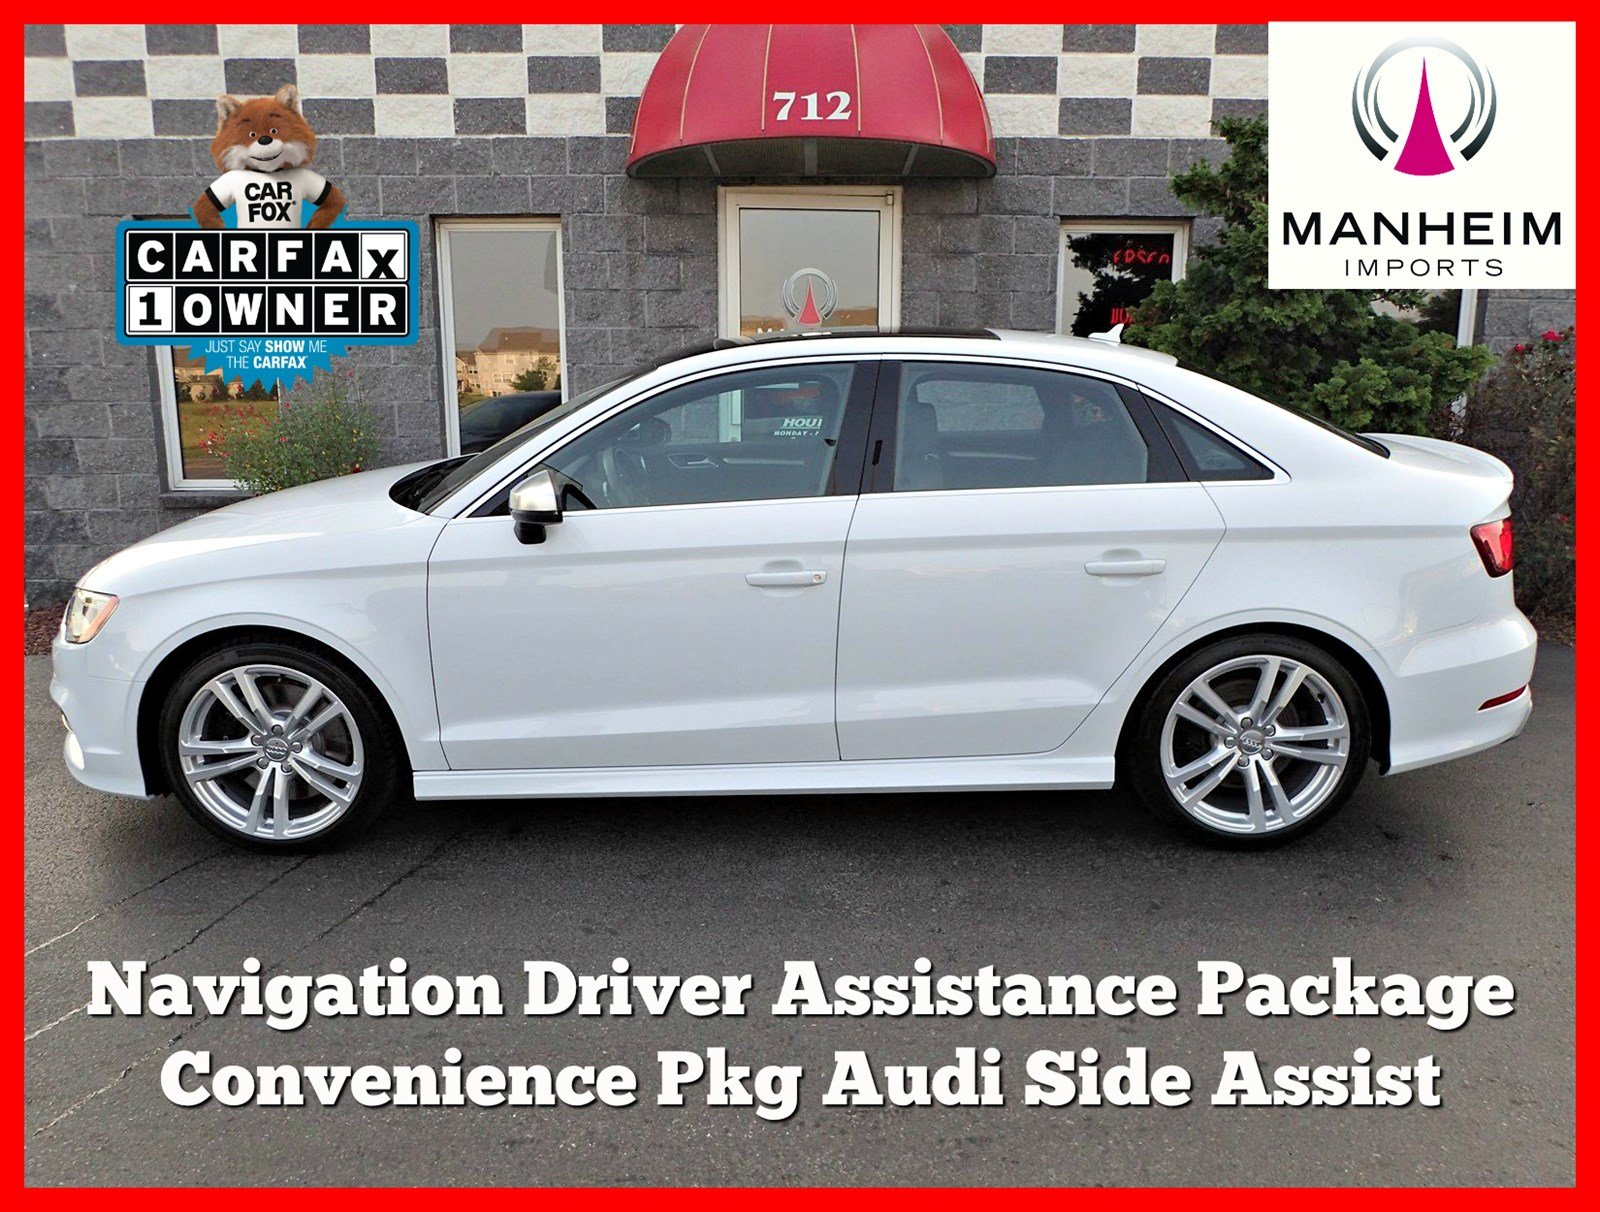 Pre Owned 2015 Audi S3 2 0T Premium Plus NAV 4dr Car in Manheim